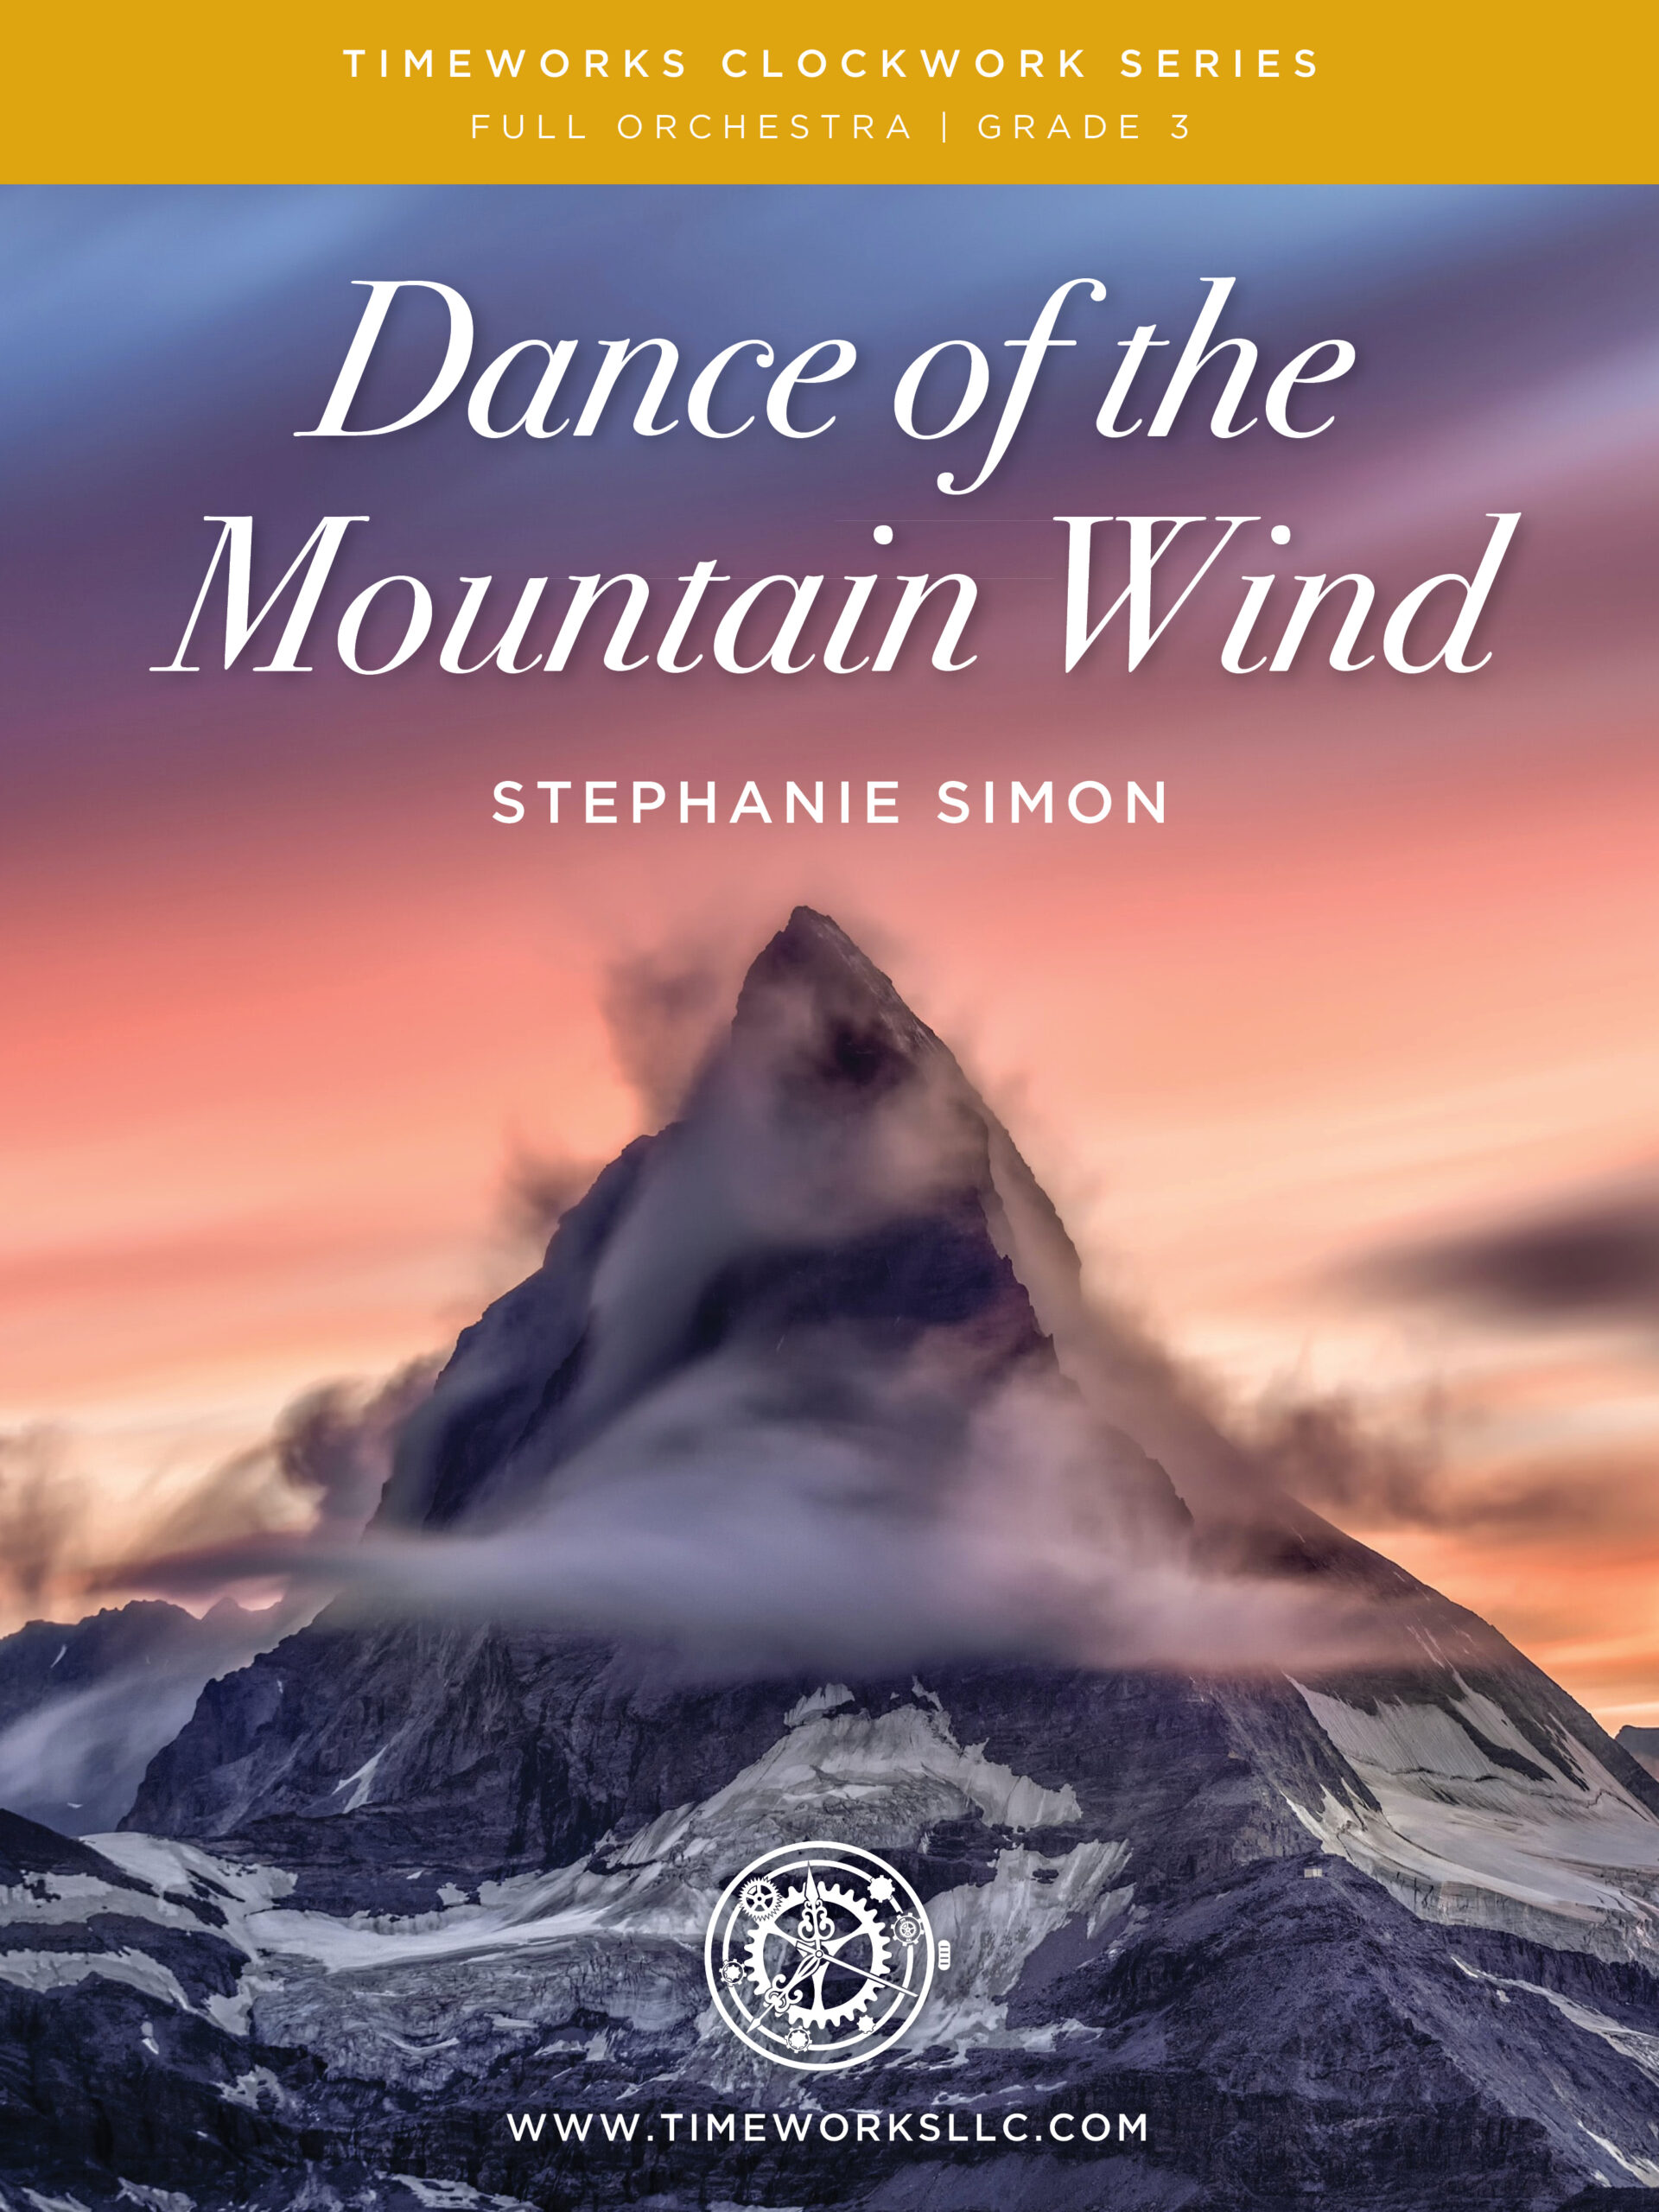 Dance of the Mountain Wind Image